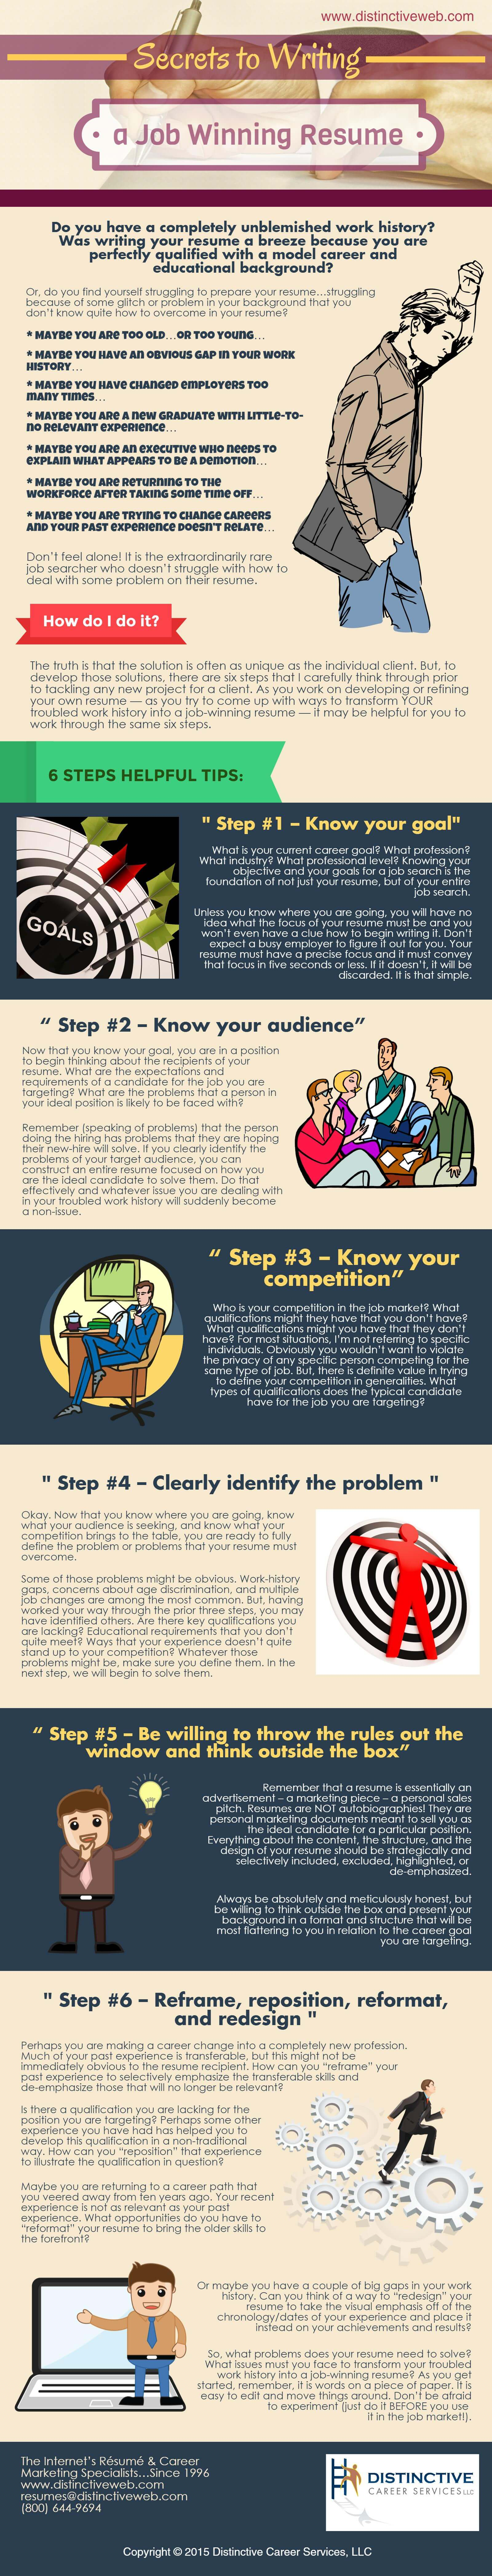 infographic showing tips on writing a winning resume/